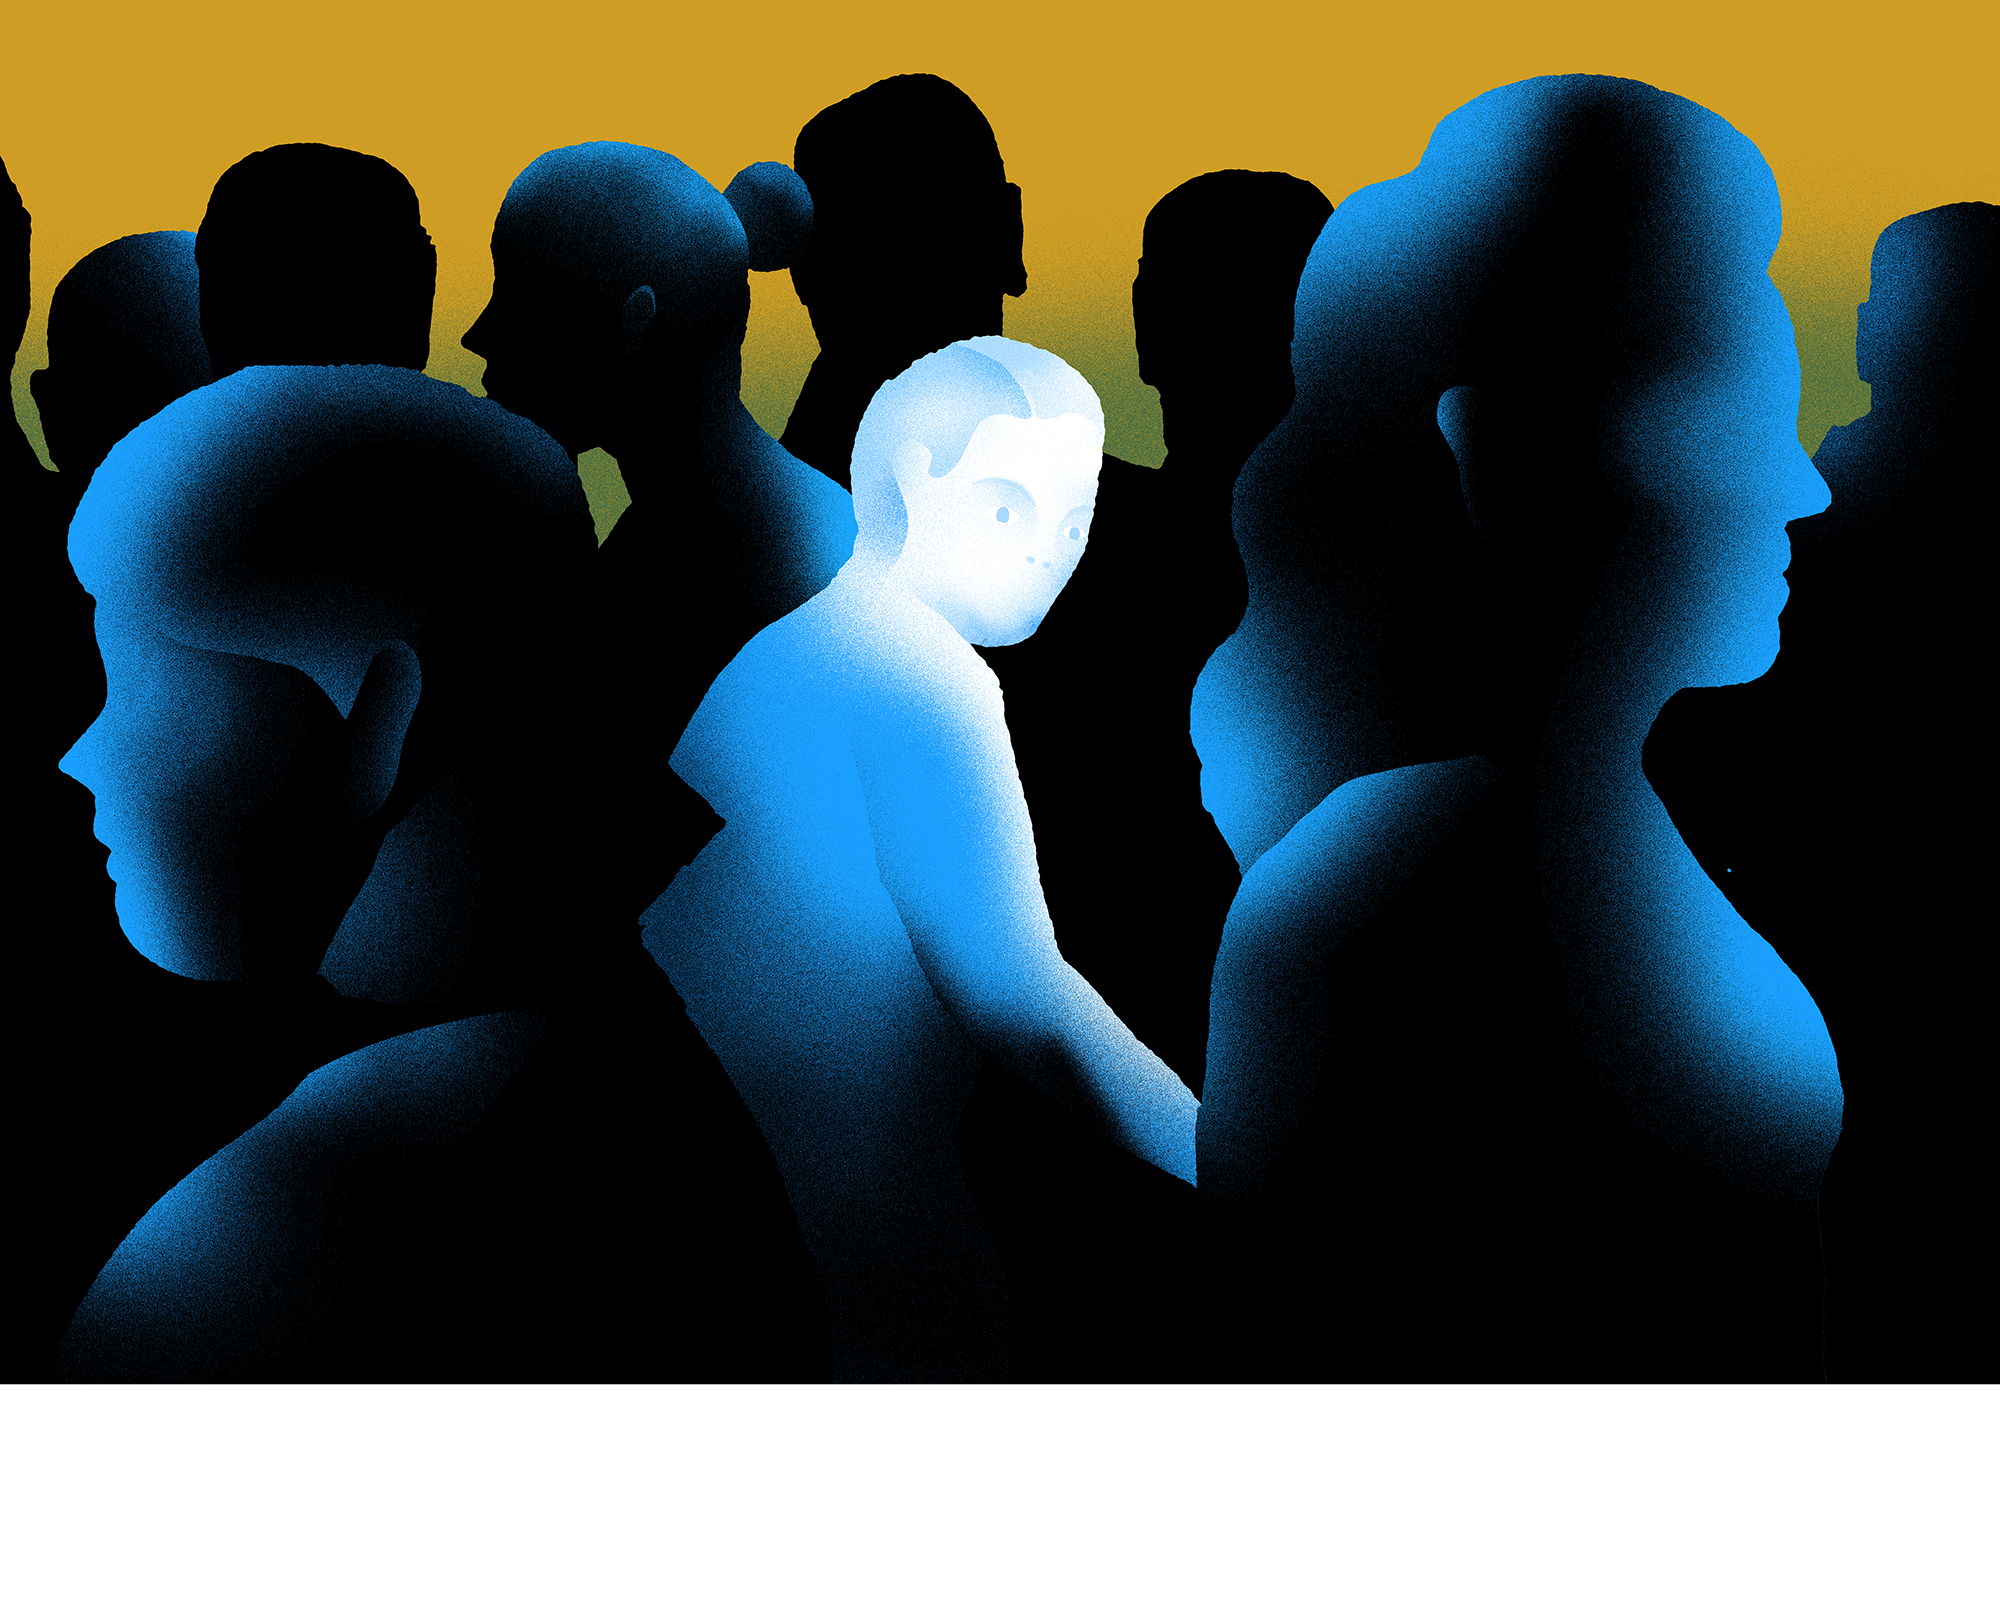 Illustration: a white-highlighted person looks suspiciously at the crowd around him, who are in shadow.